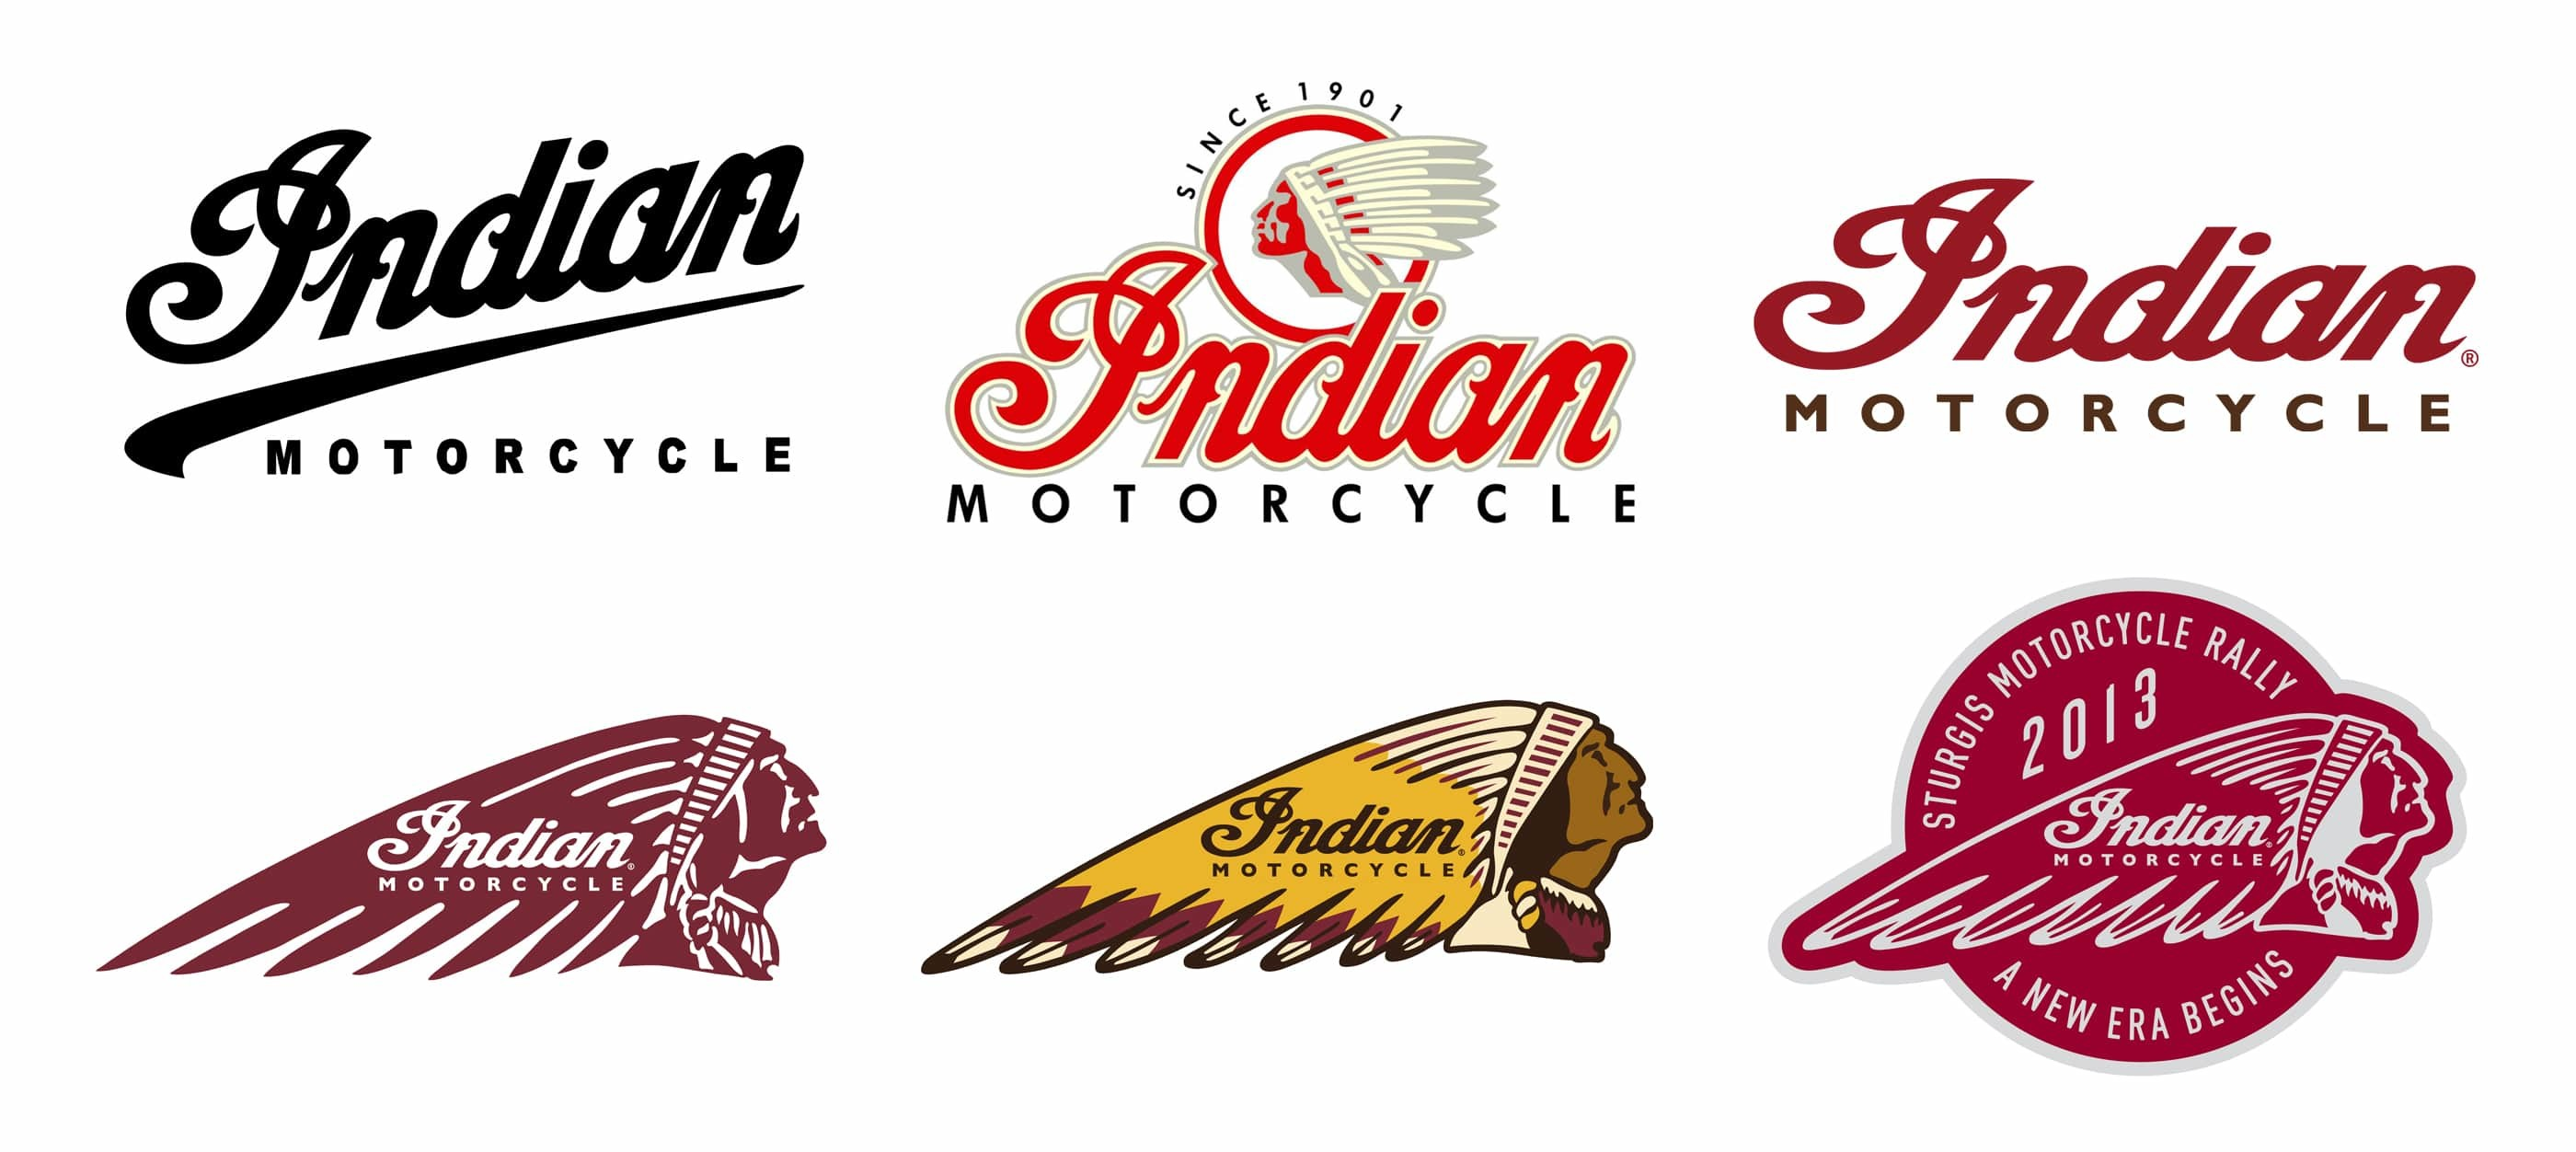 Scout motorcycle logo wallpapers clipart vector design - Tf2 logo wallpaper ...